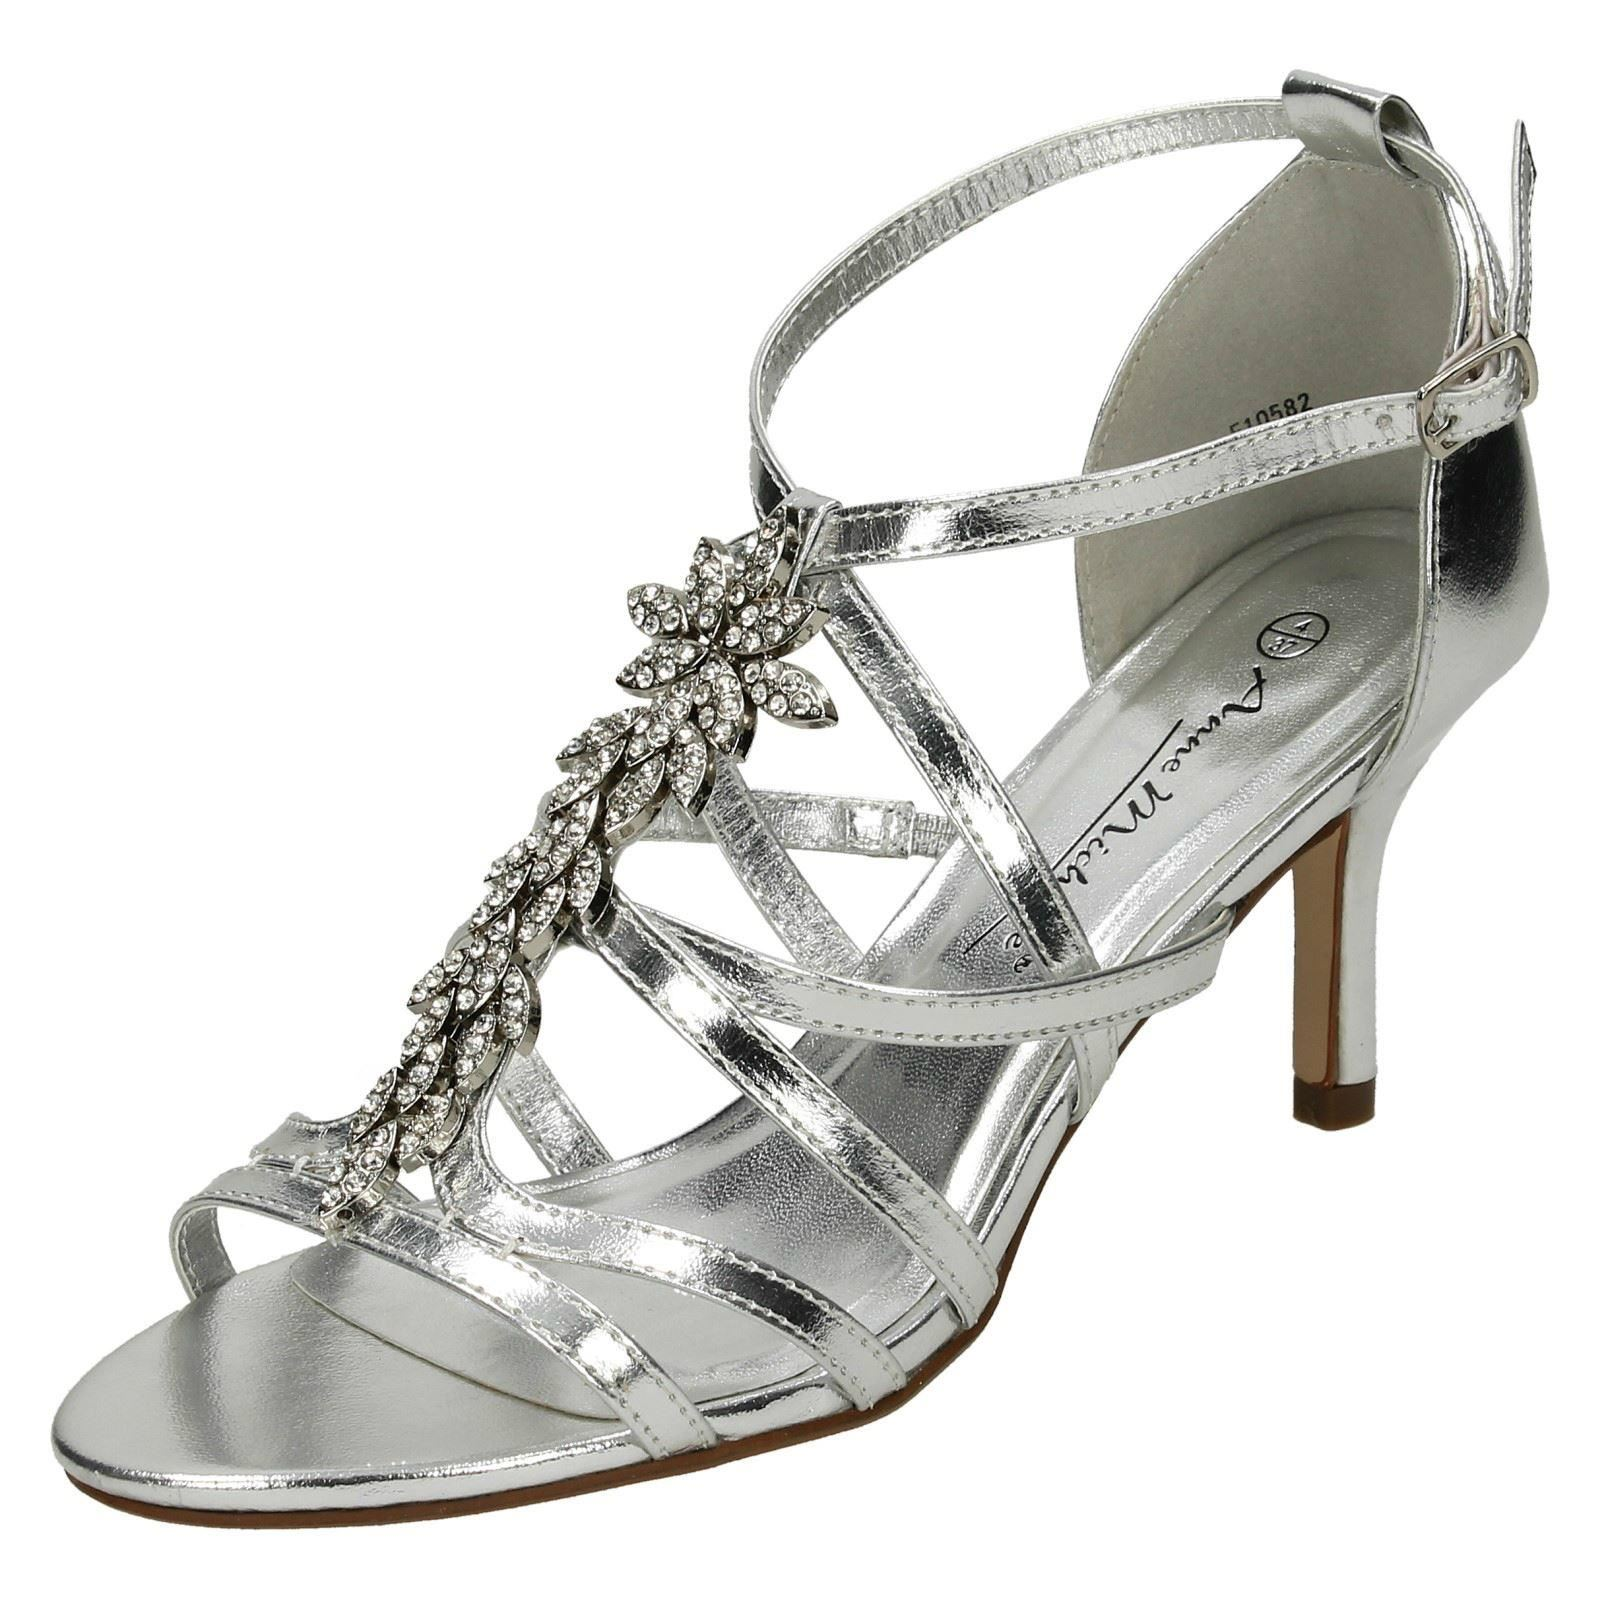 0cef9a2e3de Ladies Anne Michelle Mid Heel Strappy Sandals F10582 Silver UK 8 Standard.  About this product. Picture 1 of 10  Picture 2 of 10 ...